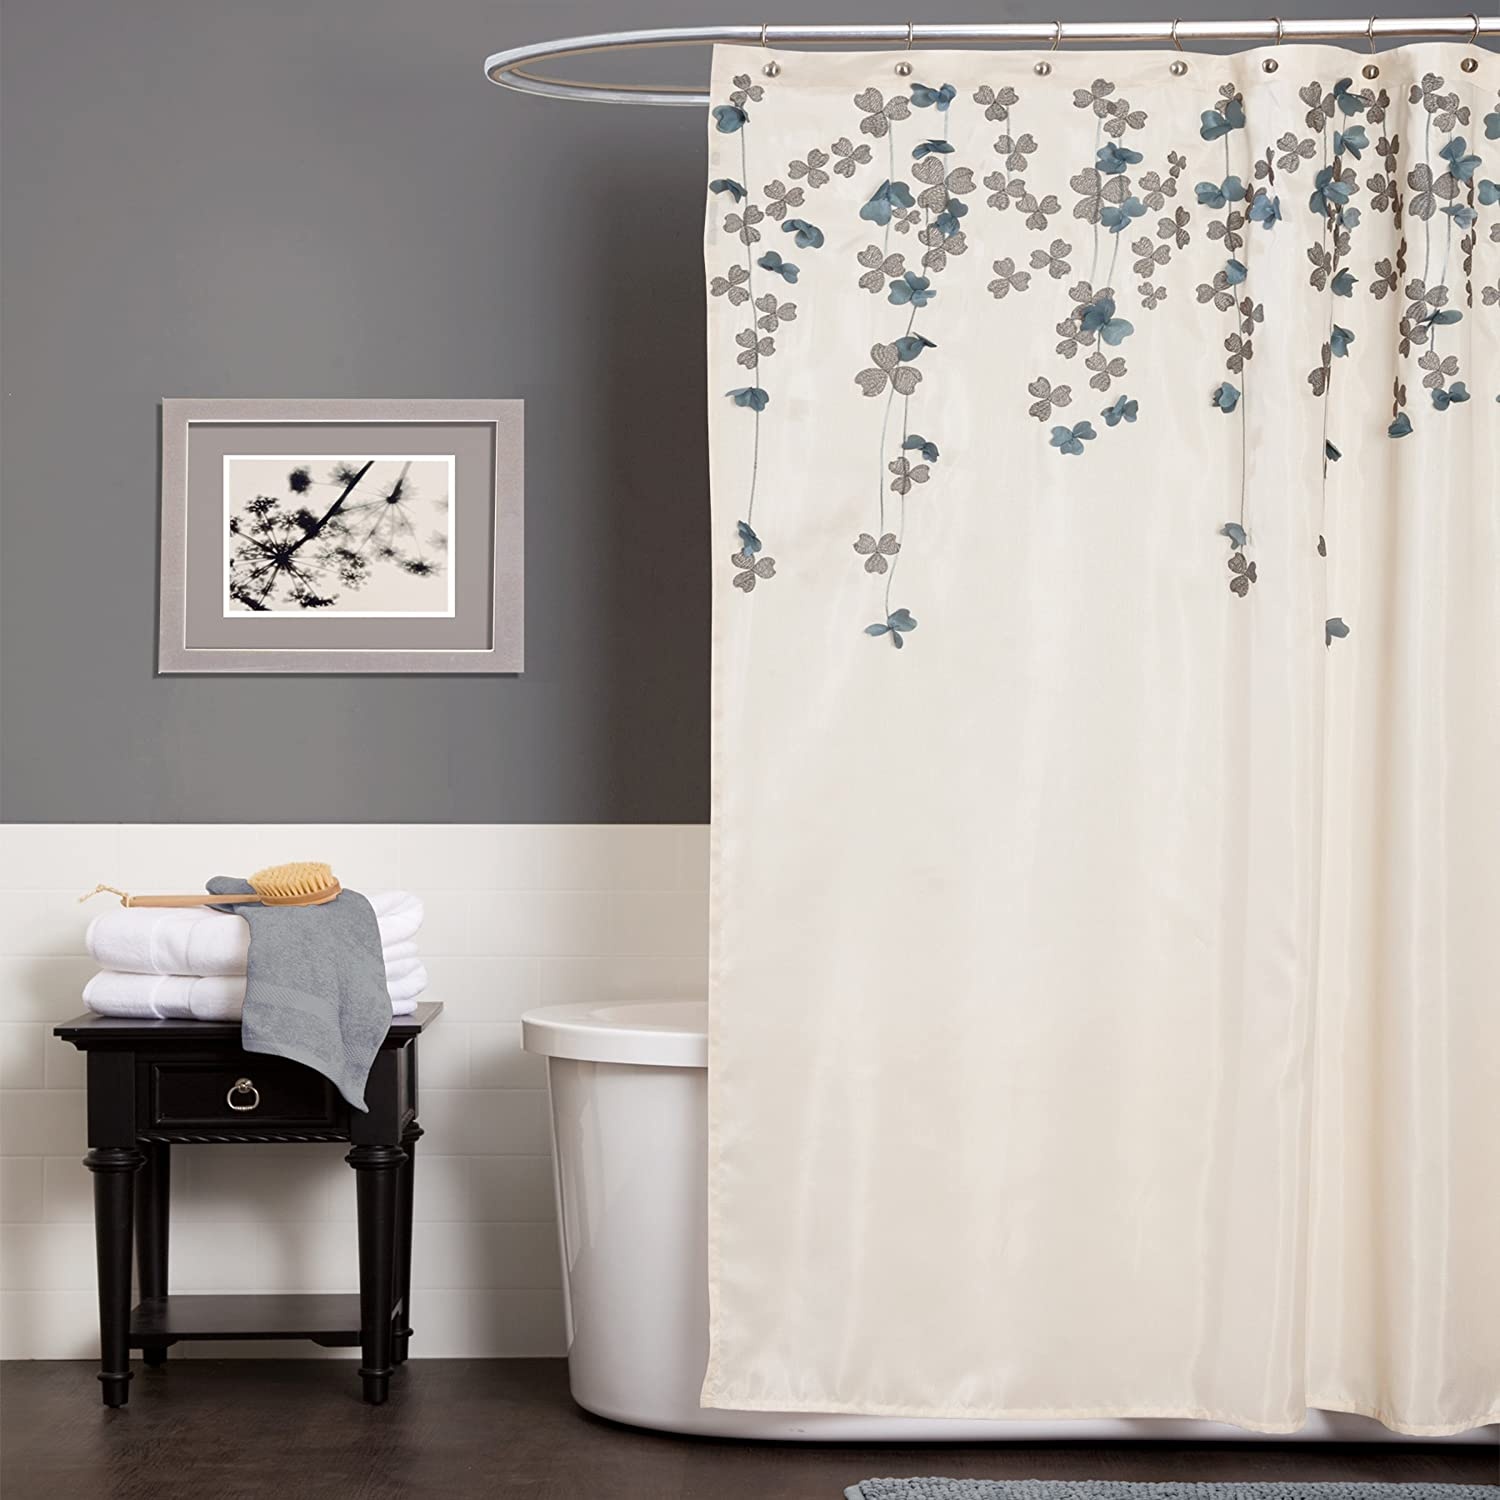 Bathroom shower curtains floral design shower curtains for Bathroom decor on amazon